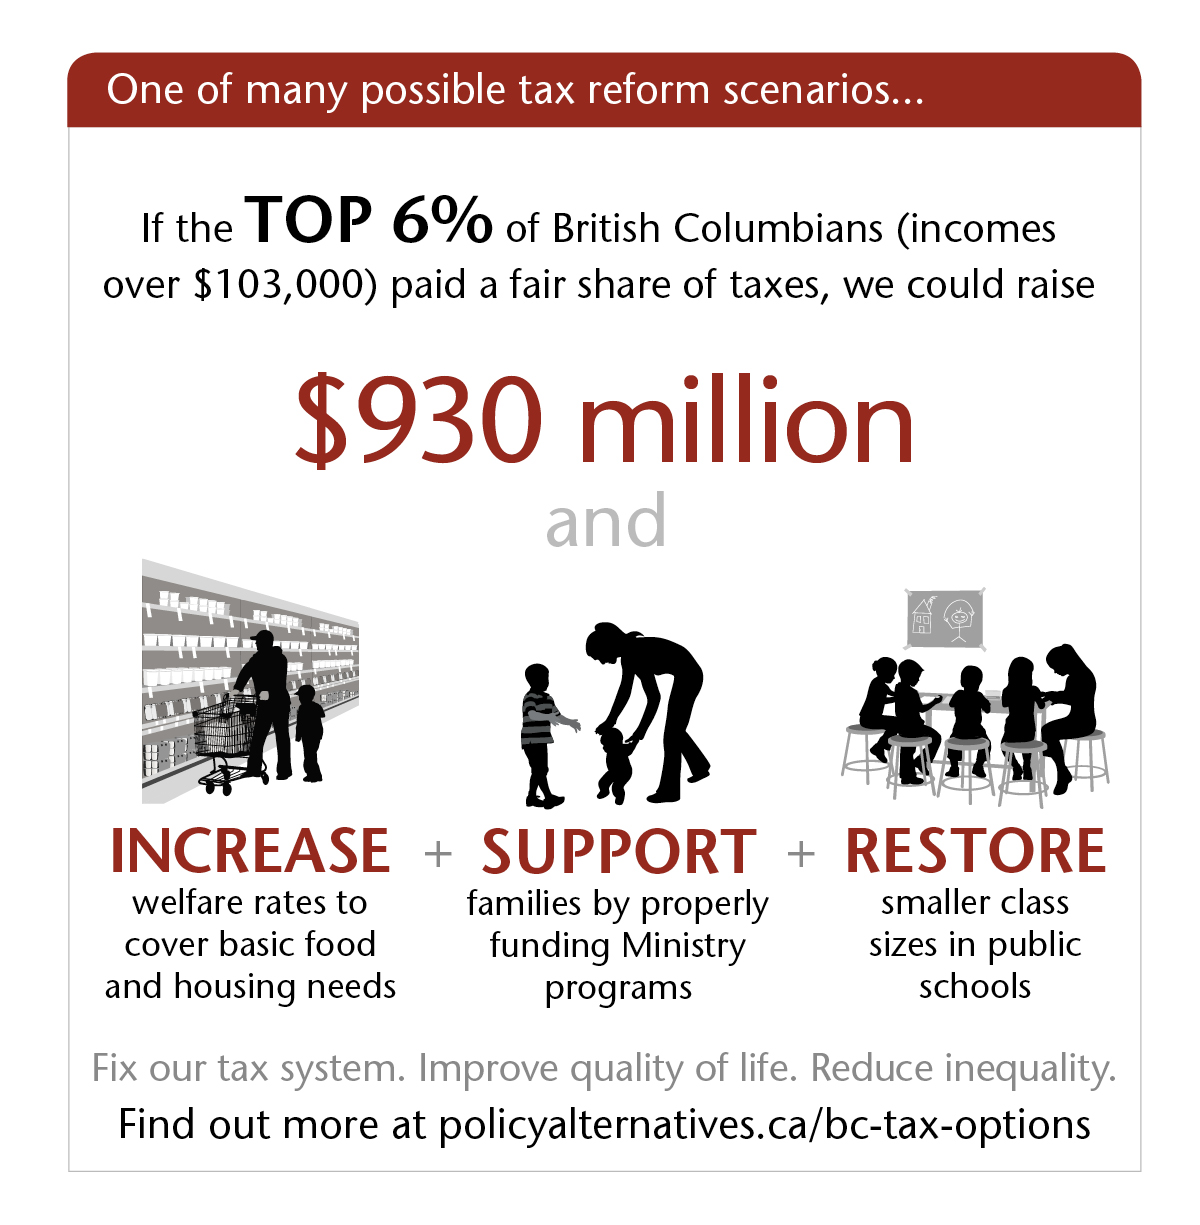 One of many possible tax reform scenarios